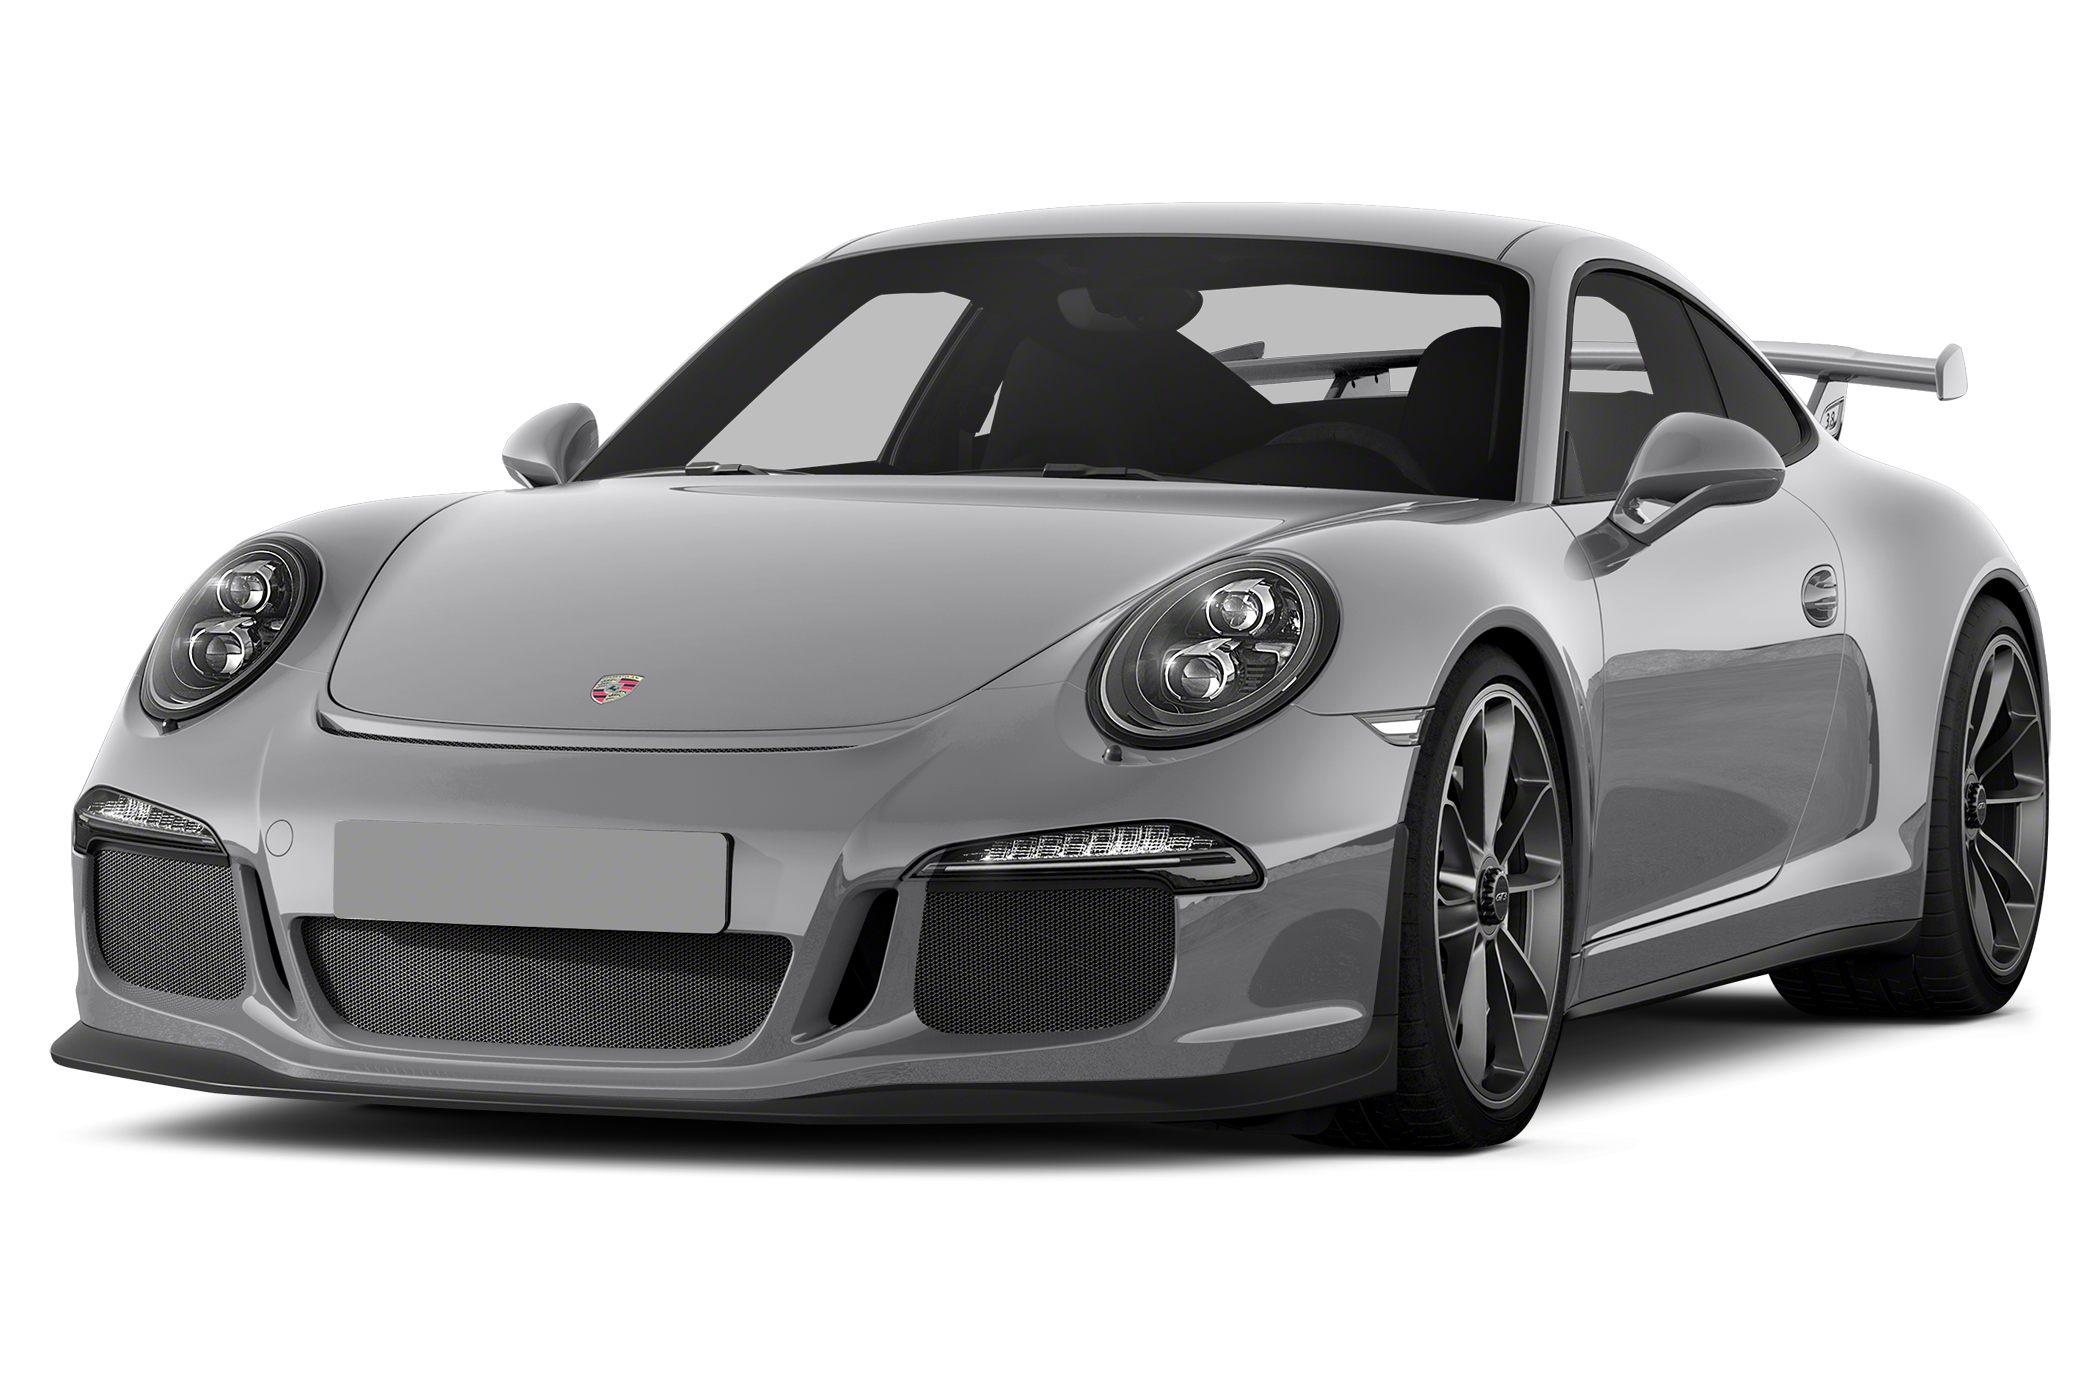 2015 Porsche 911 GT3 Coupe for sale in Springfield for $168,045 with 0 miles.